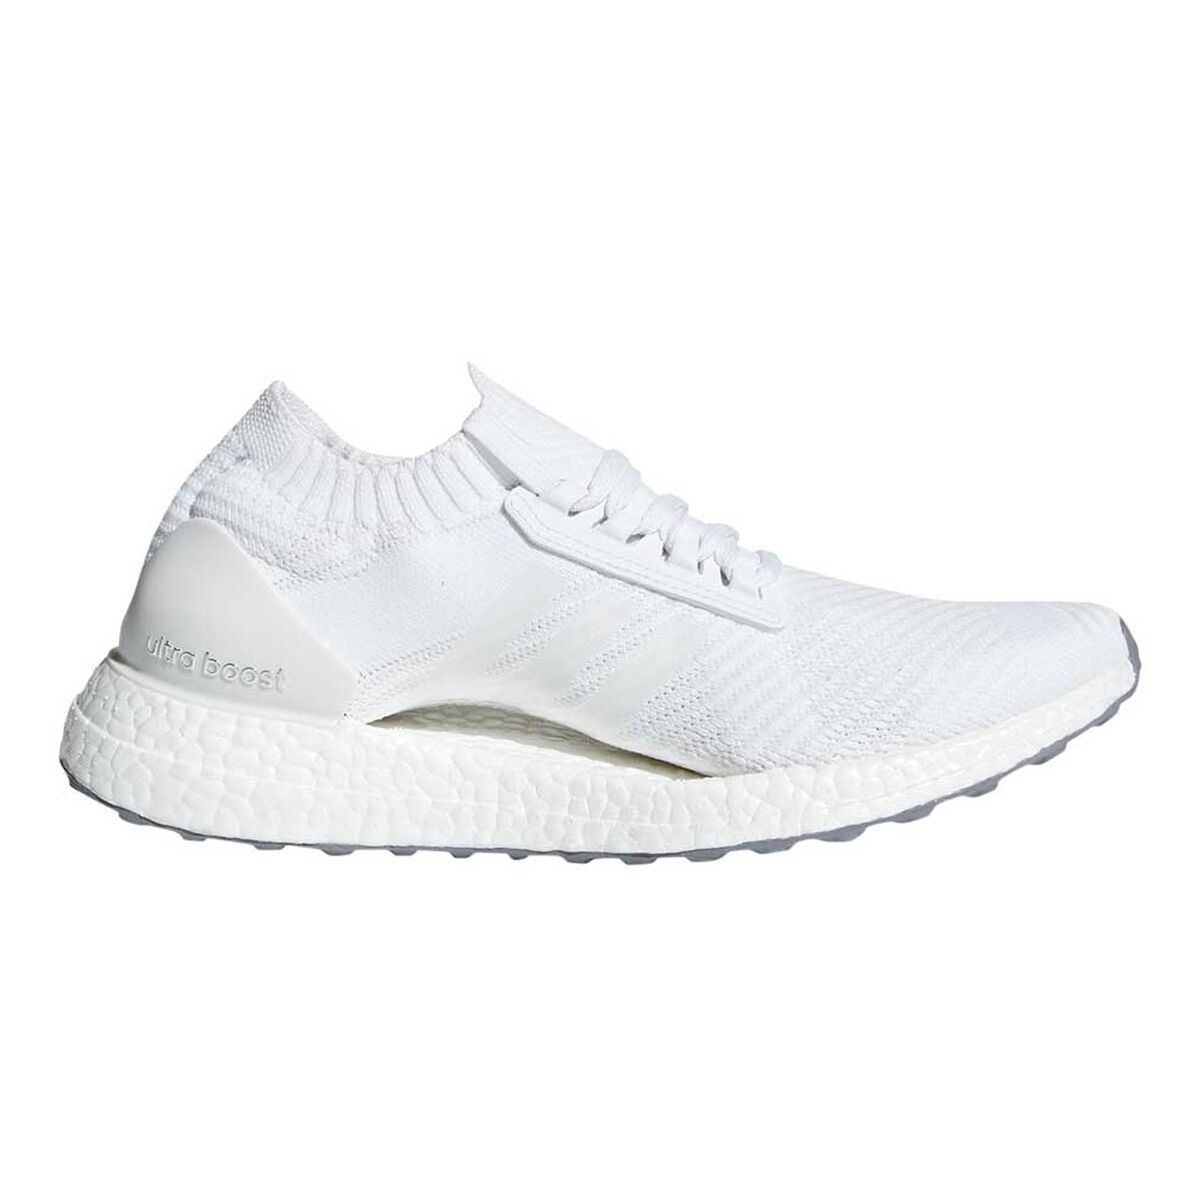 adidas Ultraboost X Womens Running Shoes White US 8.5